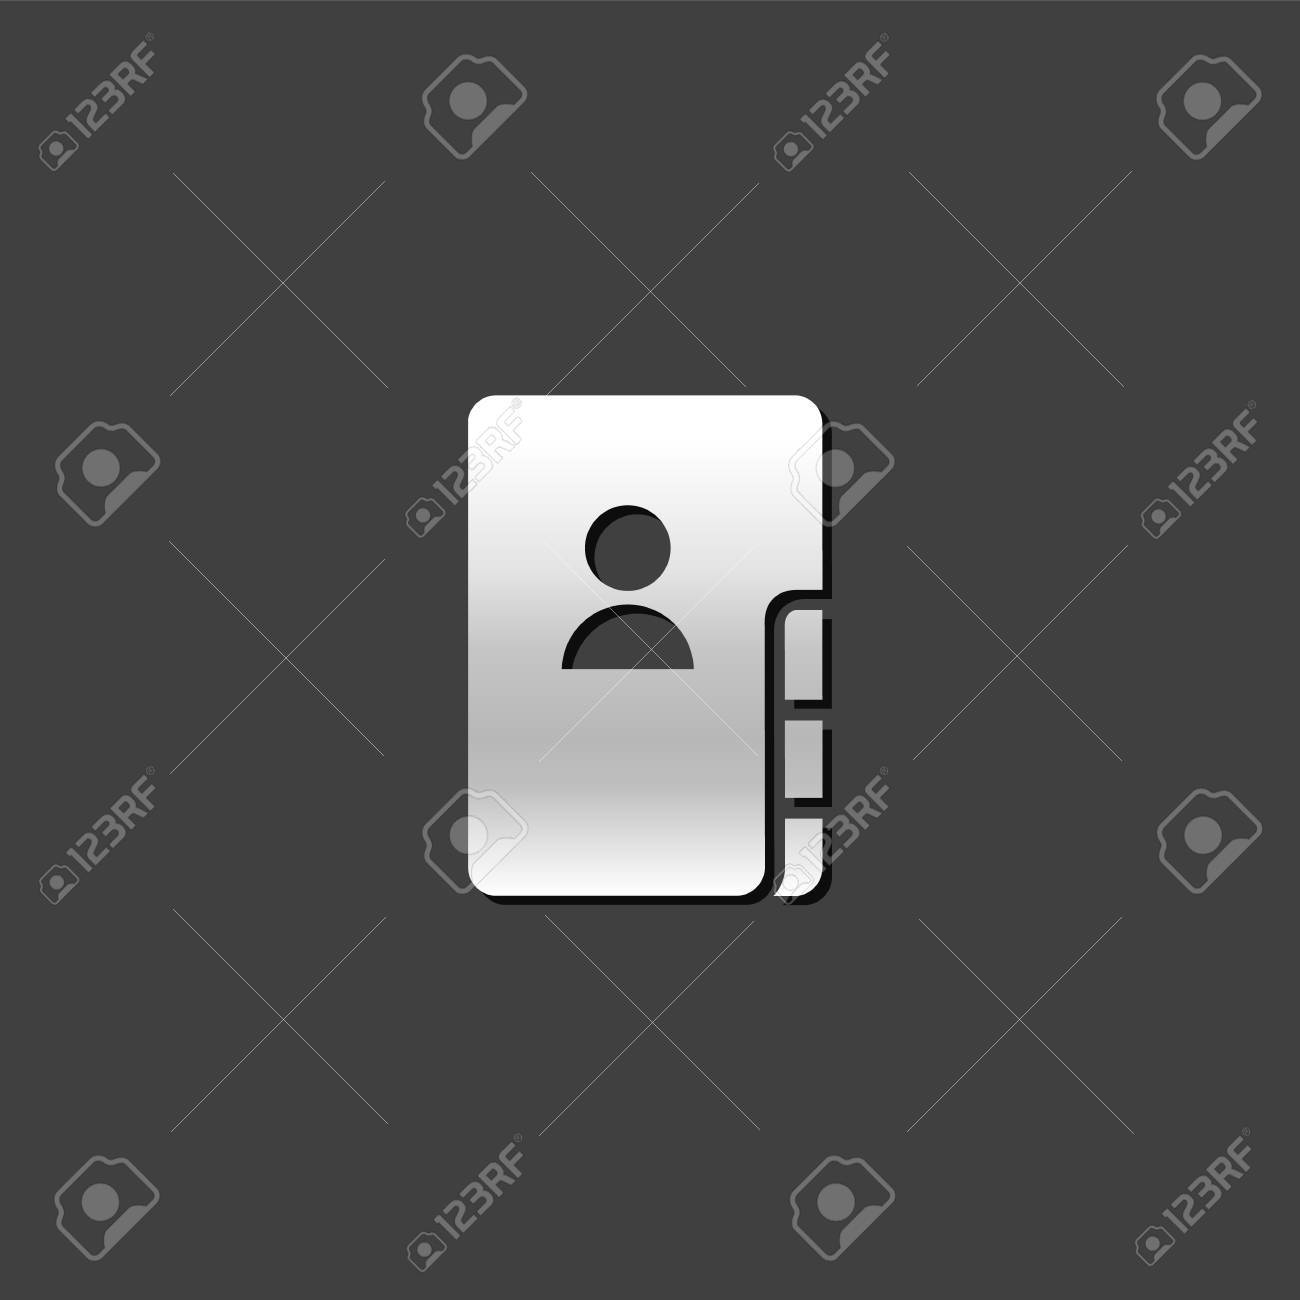 Address Book Icon In Metallic Grey Color Style. Contact Phone ...